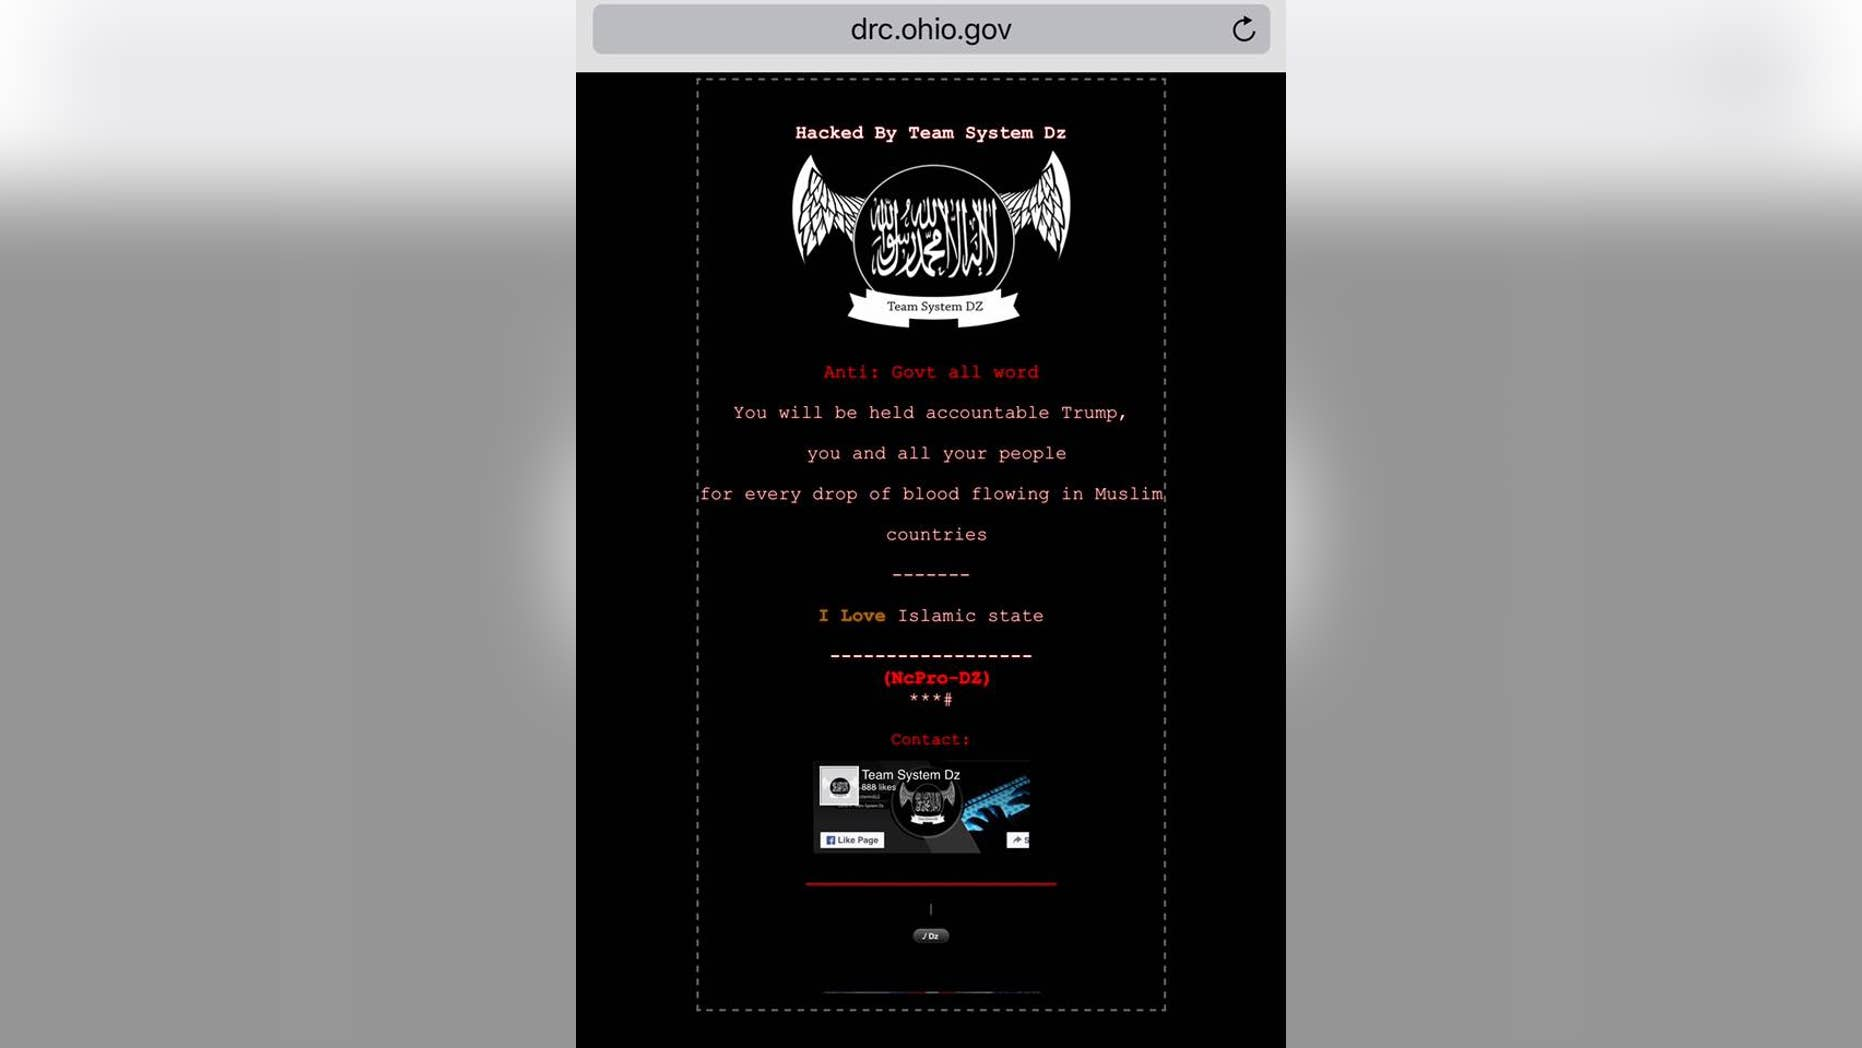 The Ohio Department of Corrections website, which was defaced on June 25, 2017.